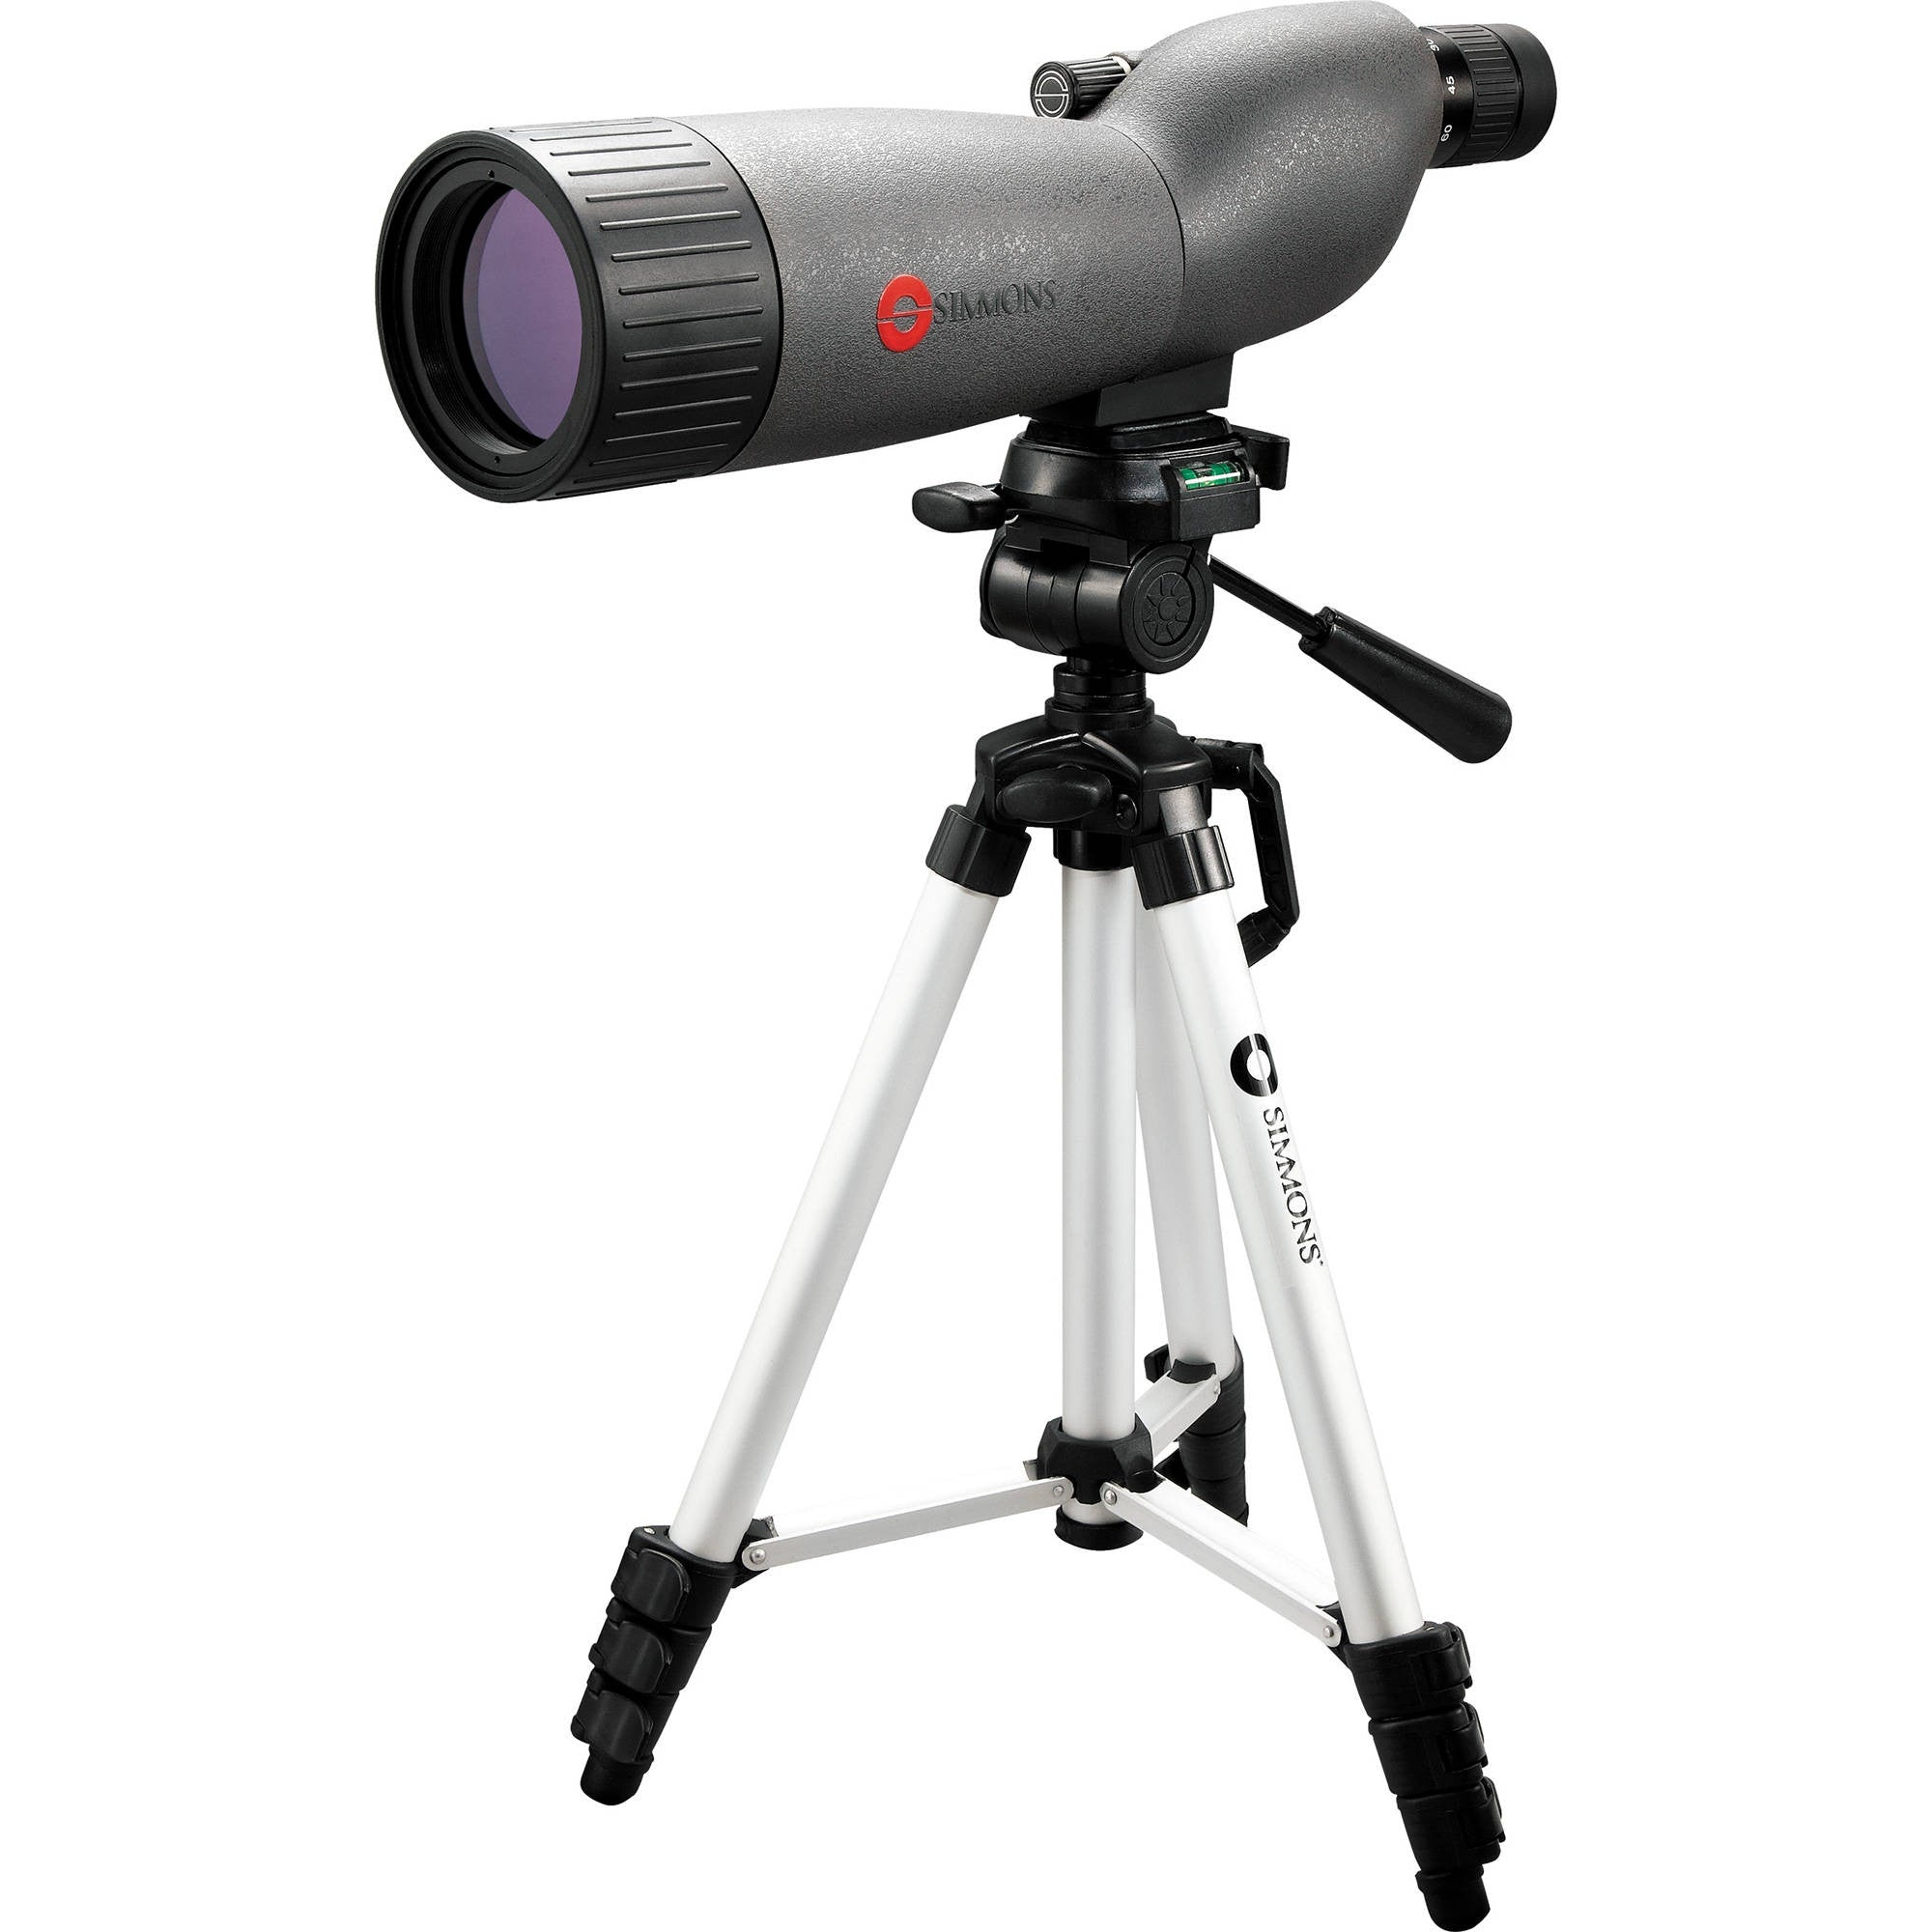 Simmons 841102 Pro Sport 20-60x60 Spotting Scope with Tripod and Hard Case 045618841140